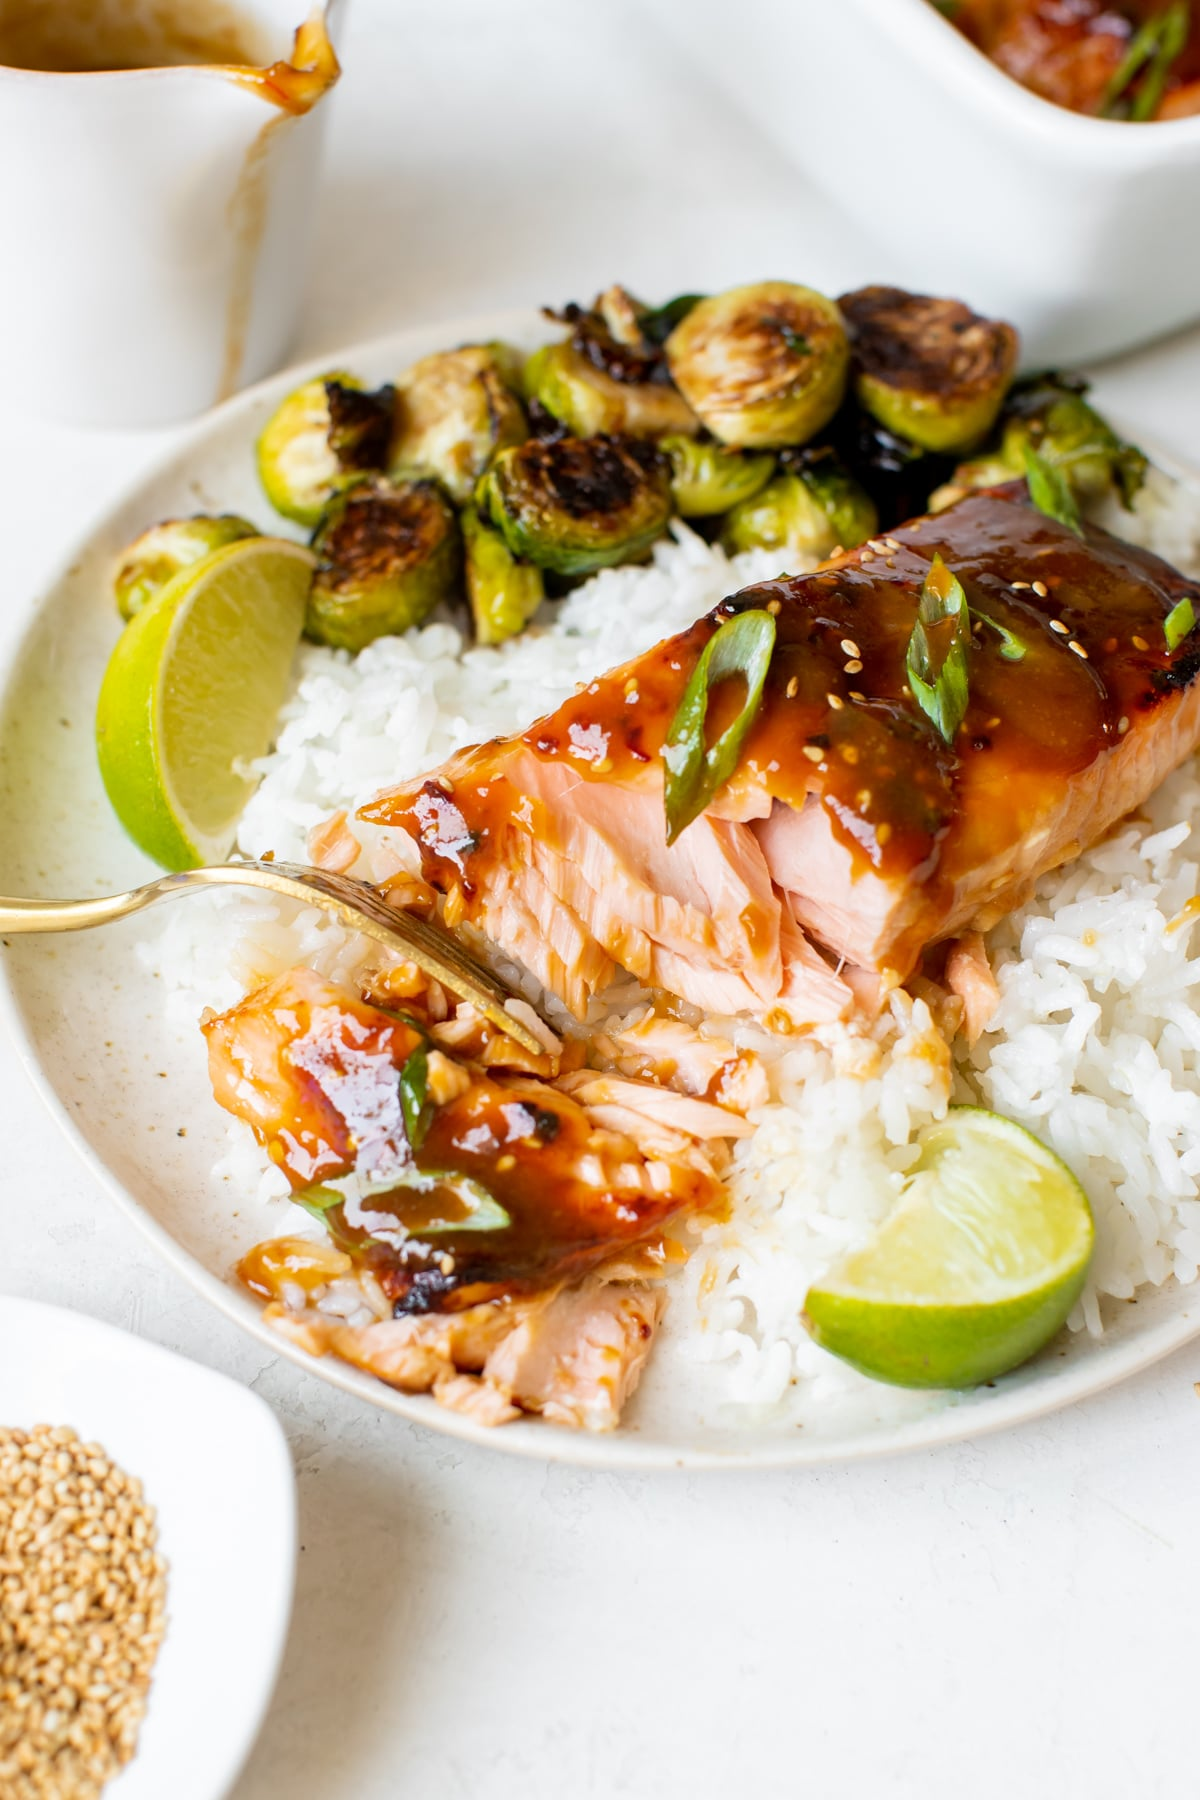 salmon with a gold fork flaking off a bite on a white plate with white rice and roasted brussels